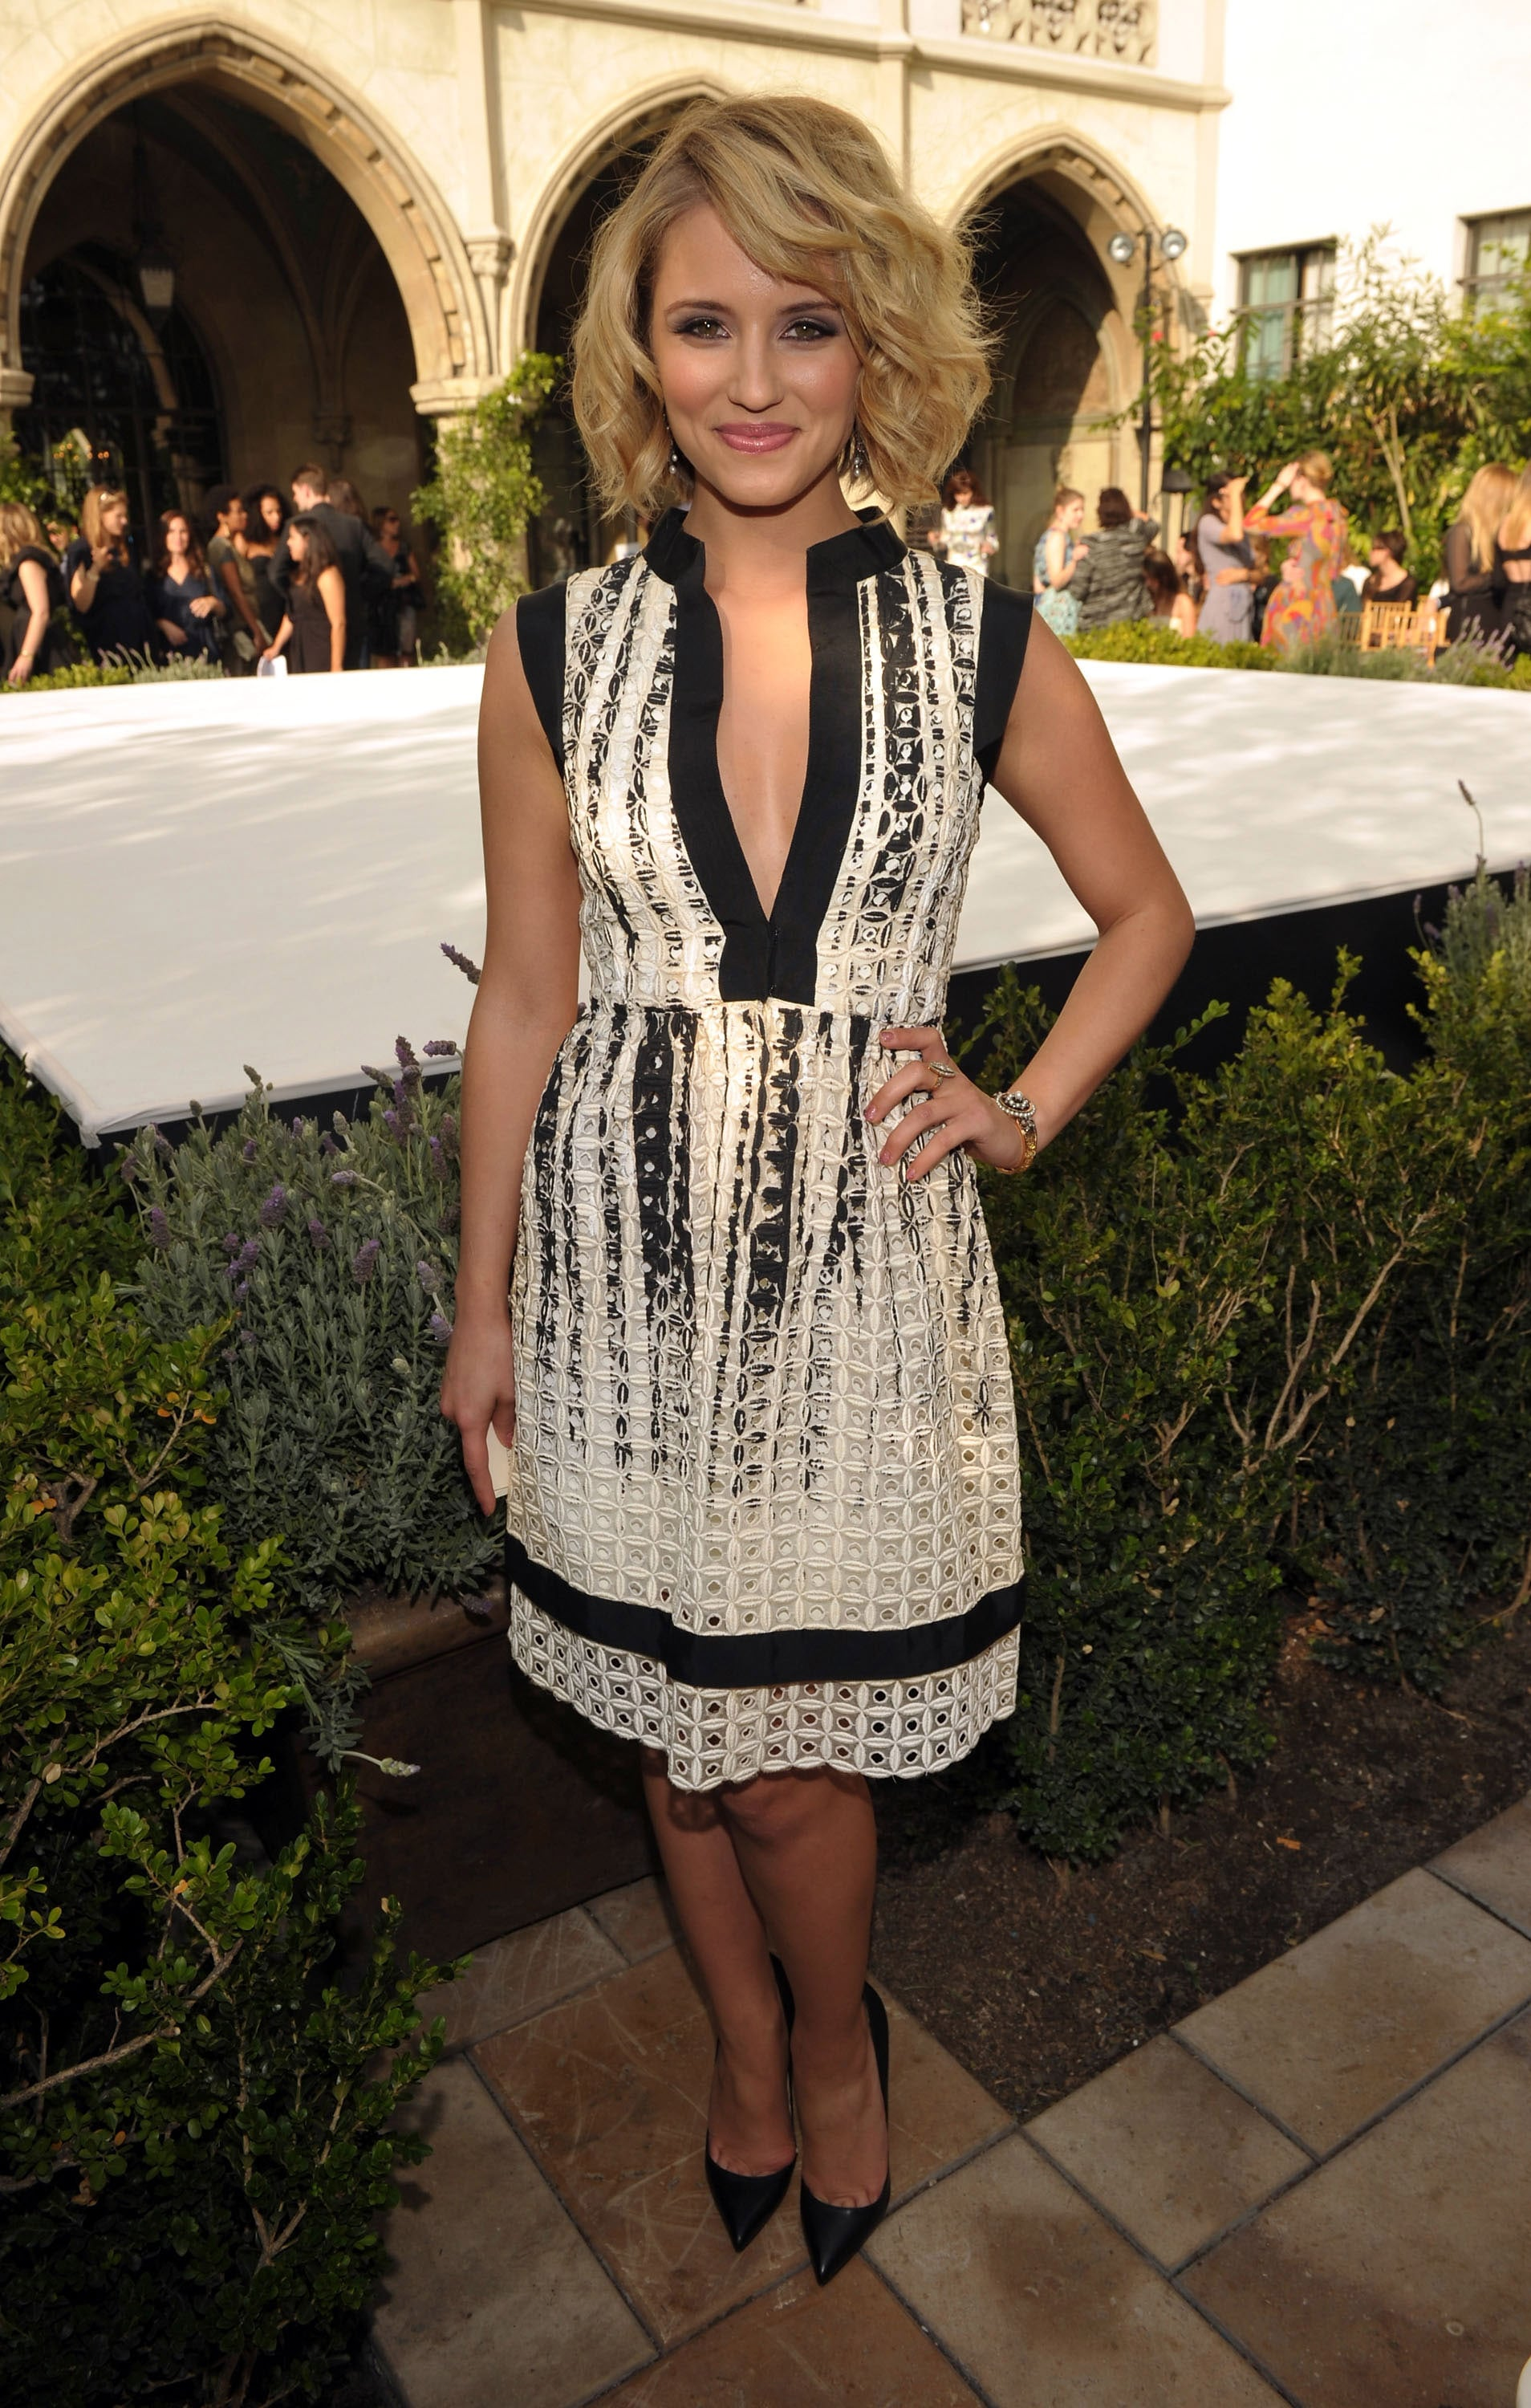 Dianna Agron attended a party in honor of the CFDA Vogue Fashion Fund Finalists in LA.